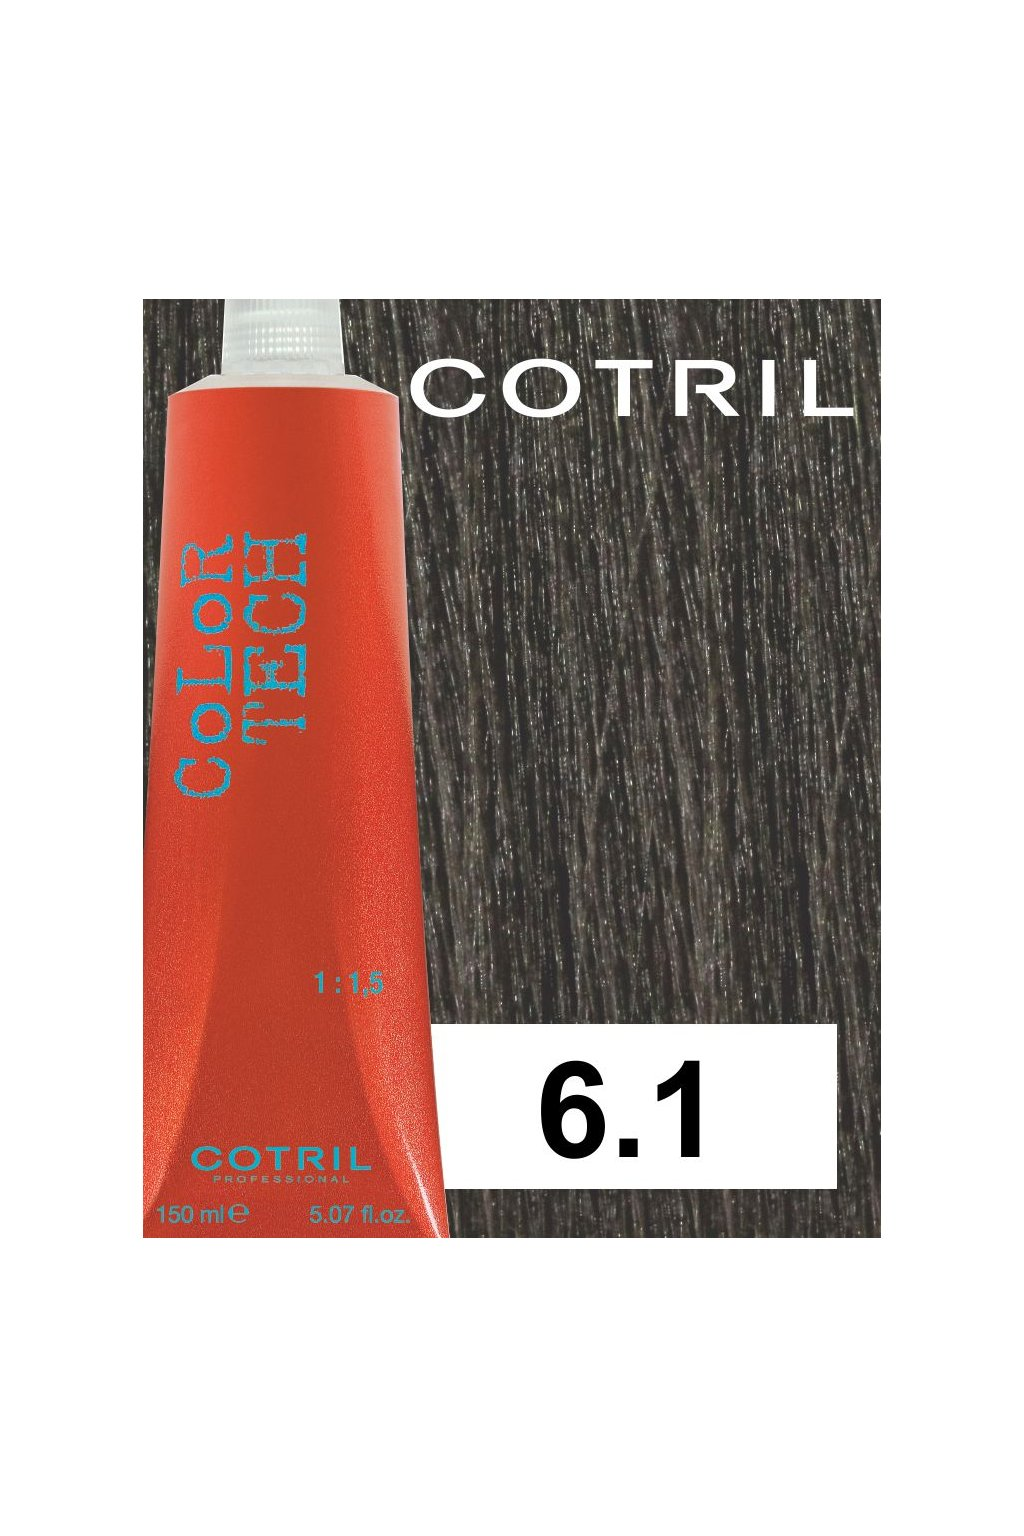 6 1 ct cotril